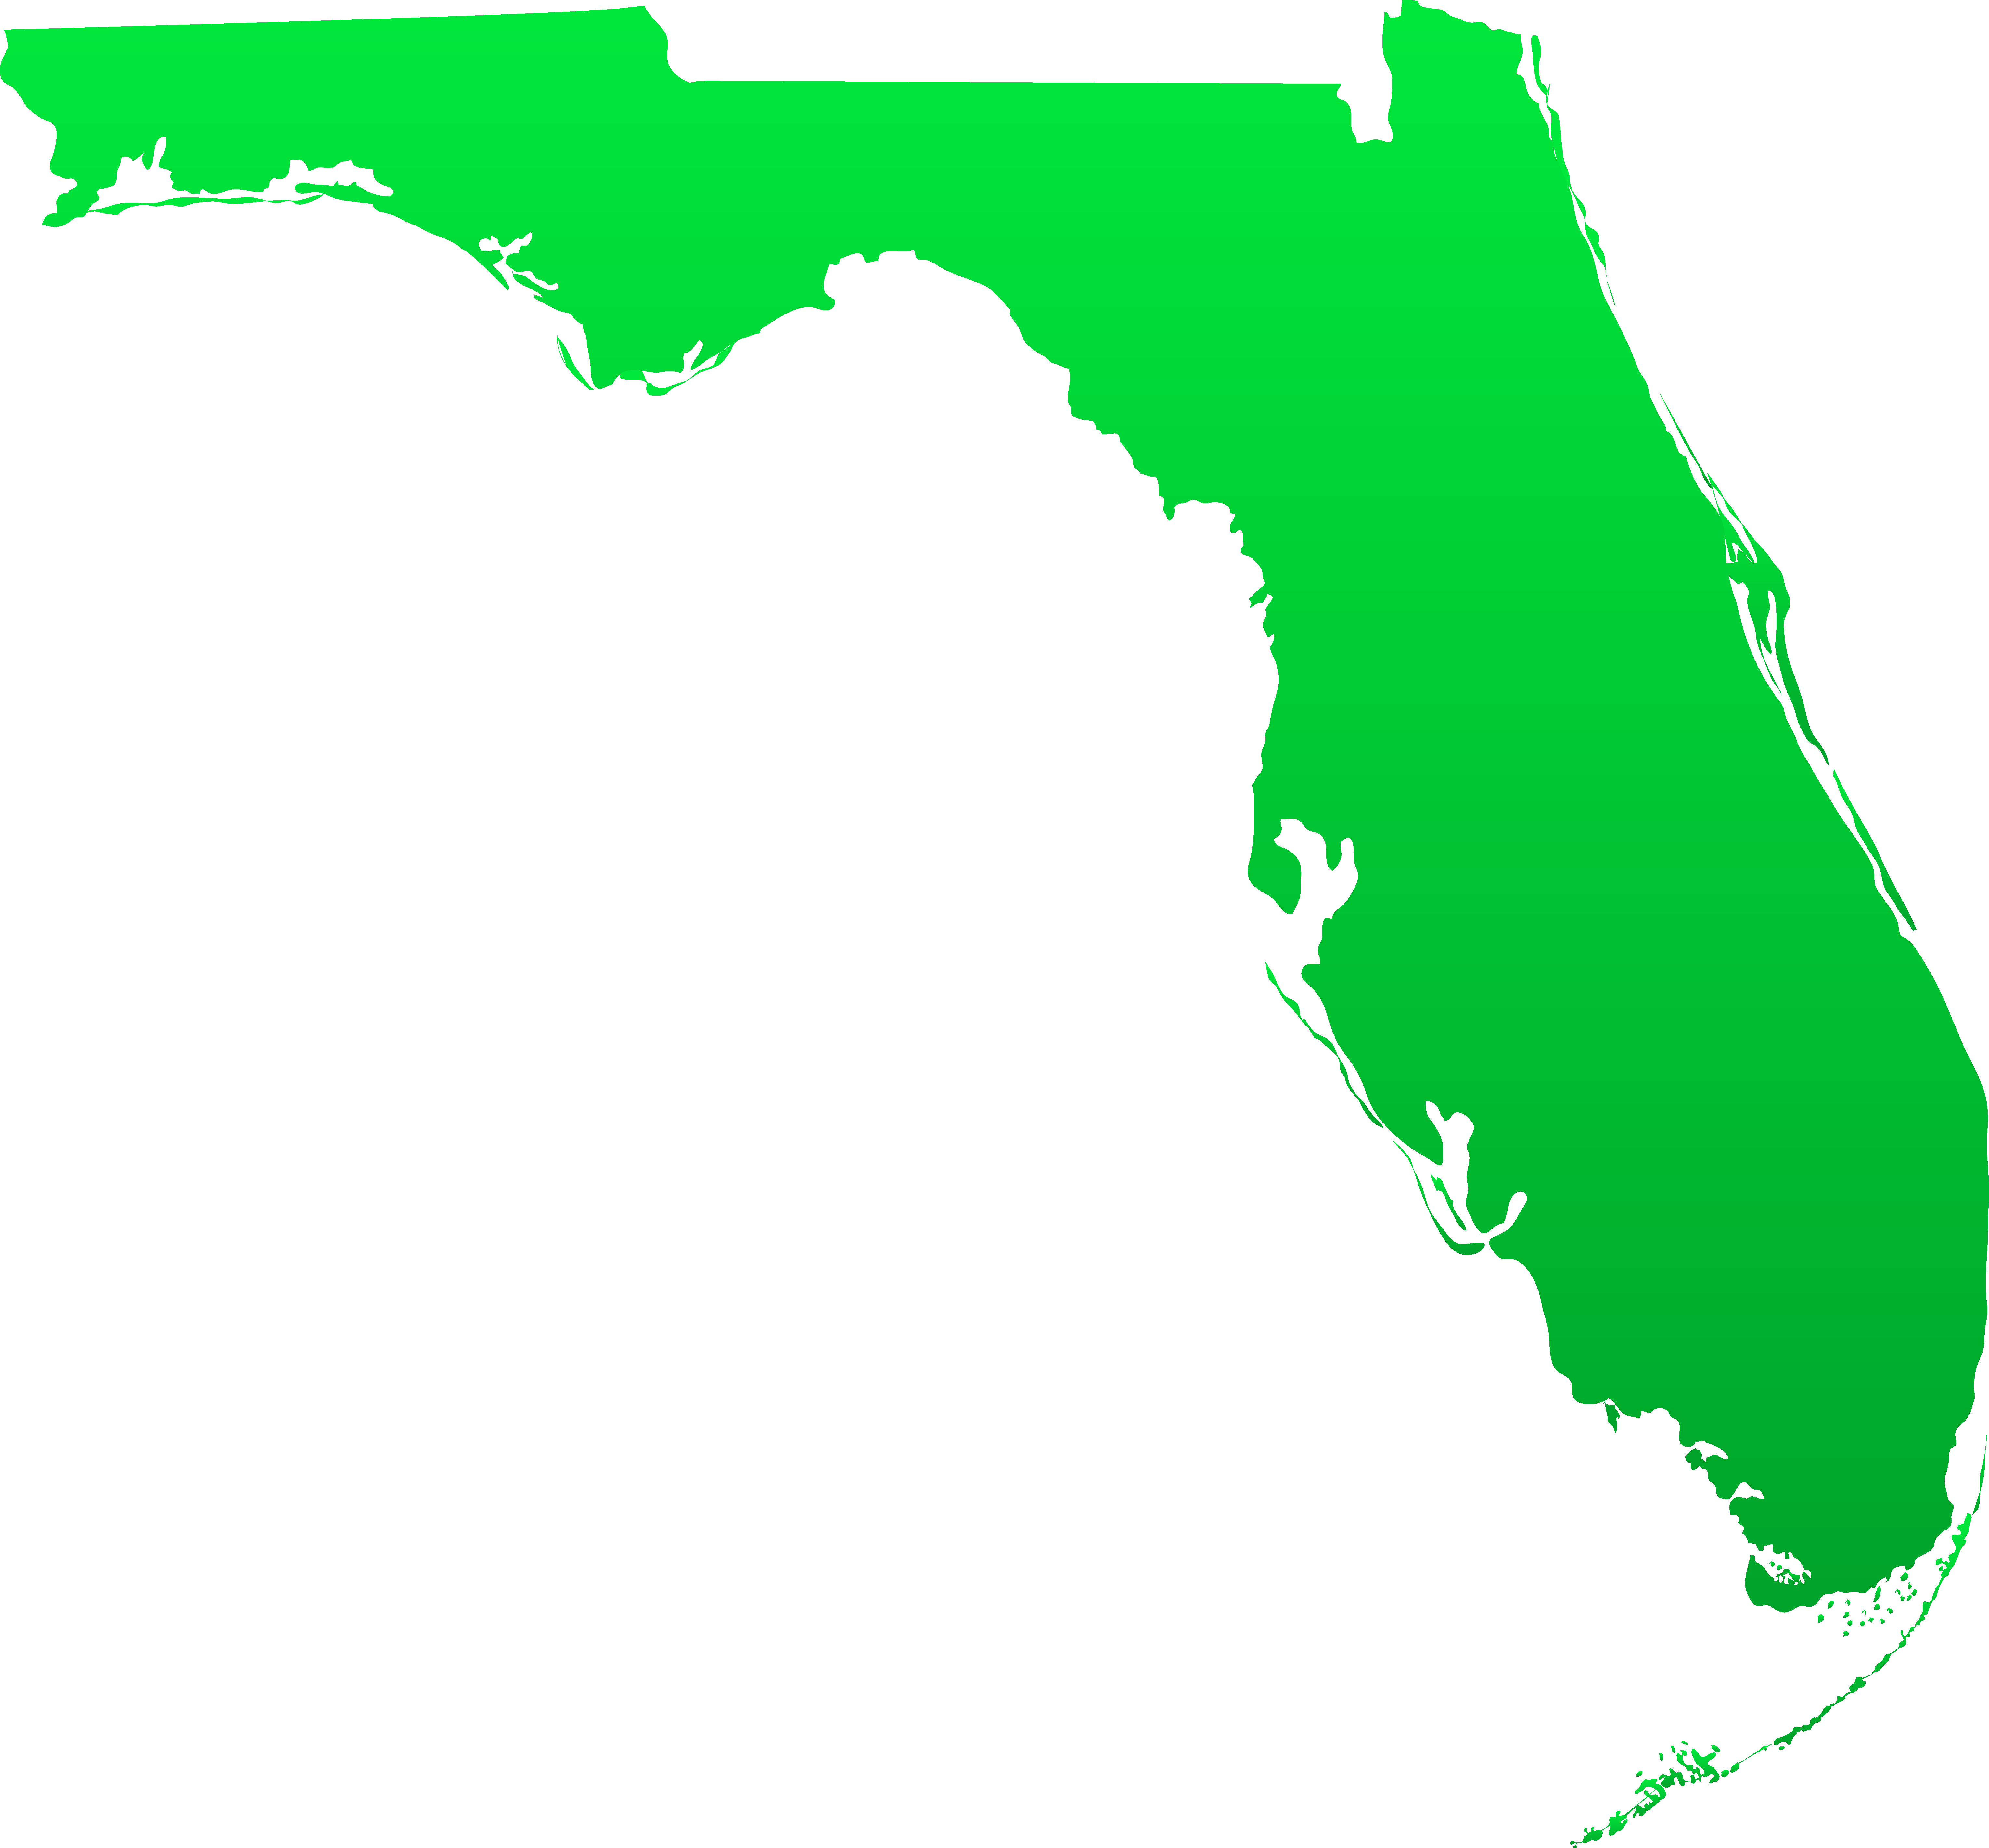 Free state map clipart jpg library download Florida state clipart - ClipartFest jpg library download